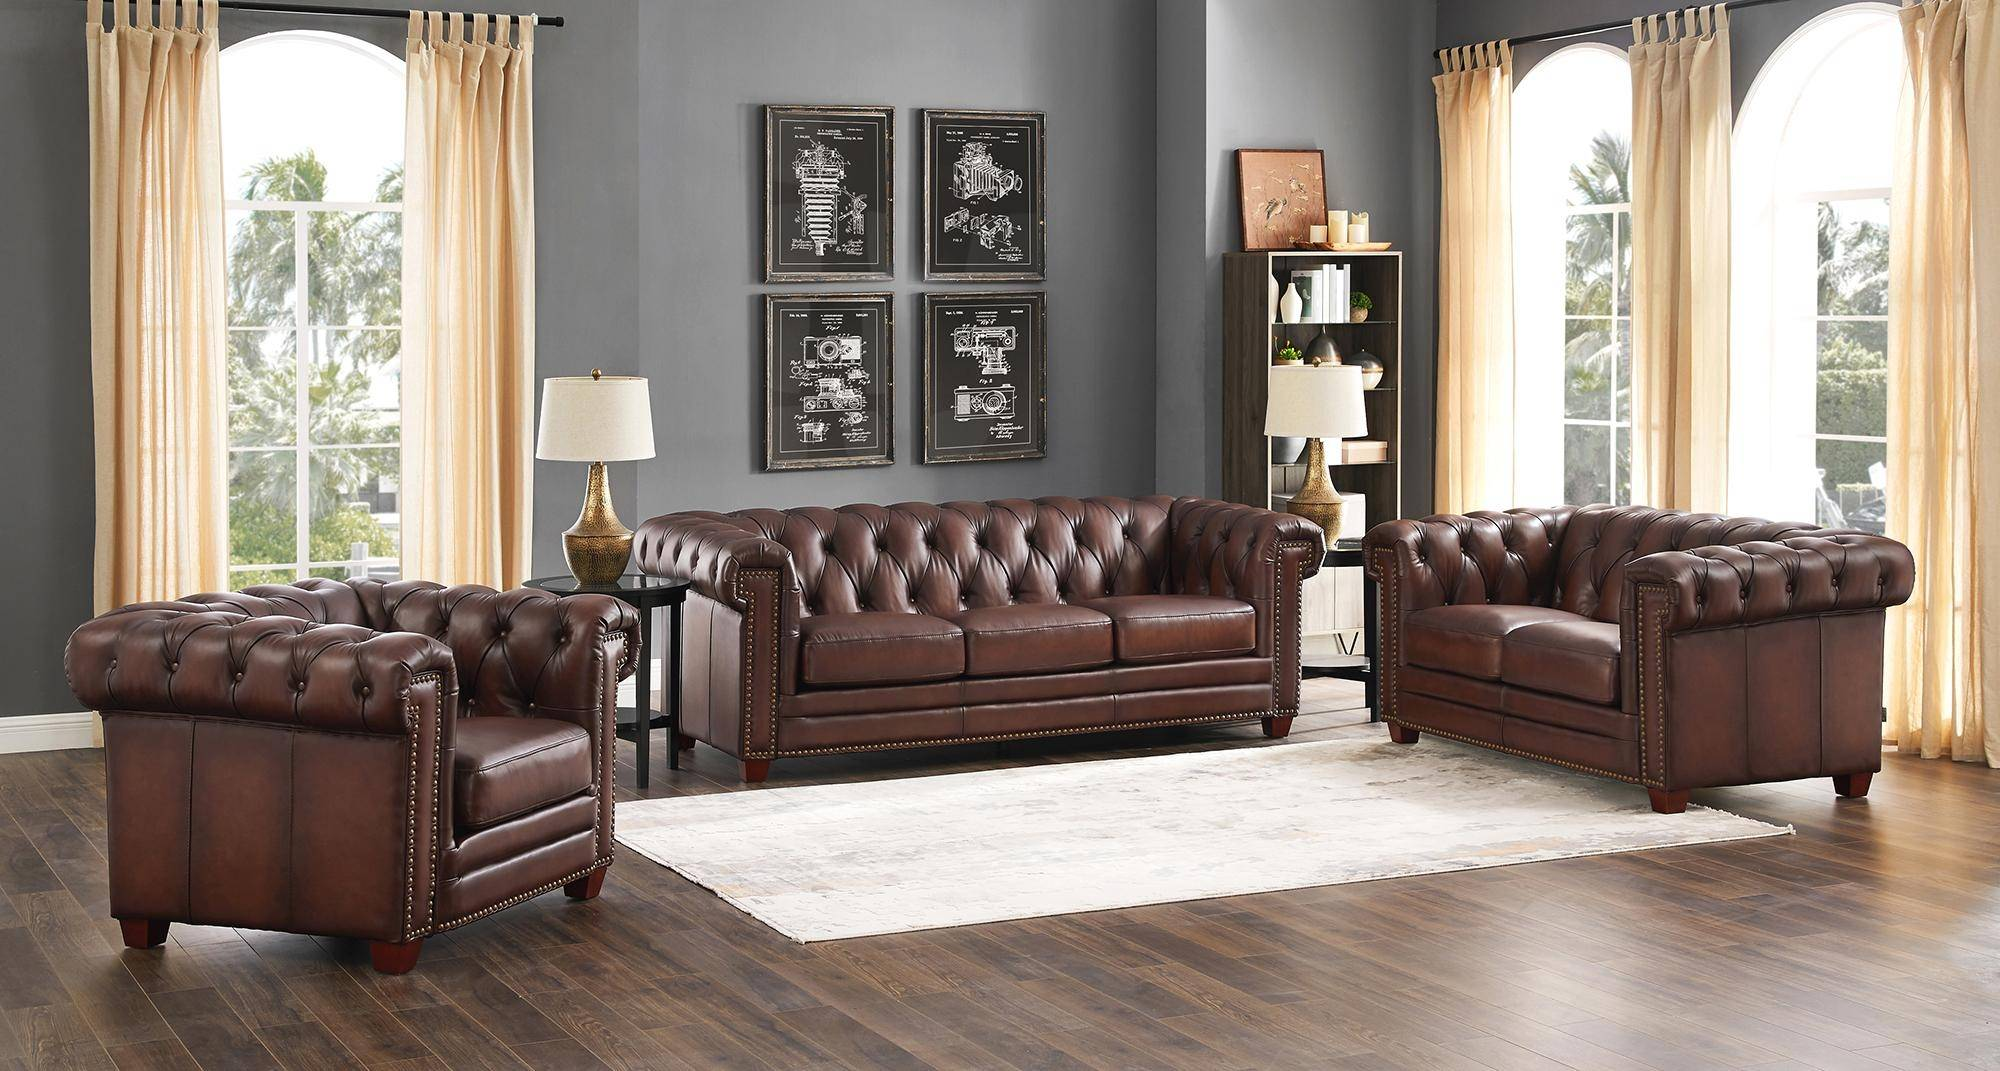 Delicieux Dark Brown STANWOOD Genuine Leather Sofa Chair Set 3Pcs HYDELINE®  Traditional For Sale